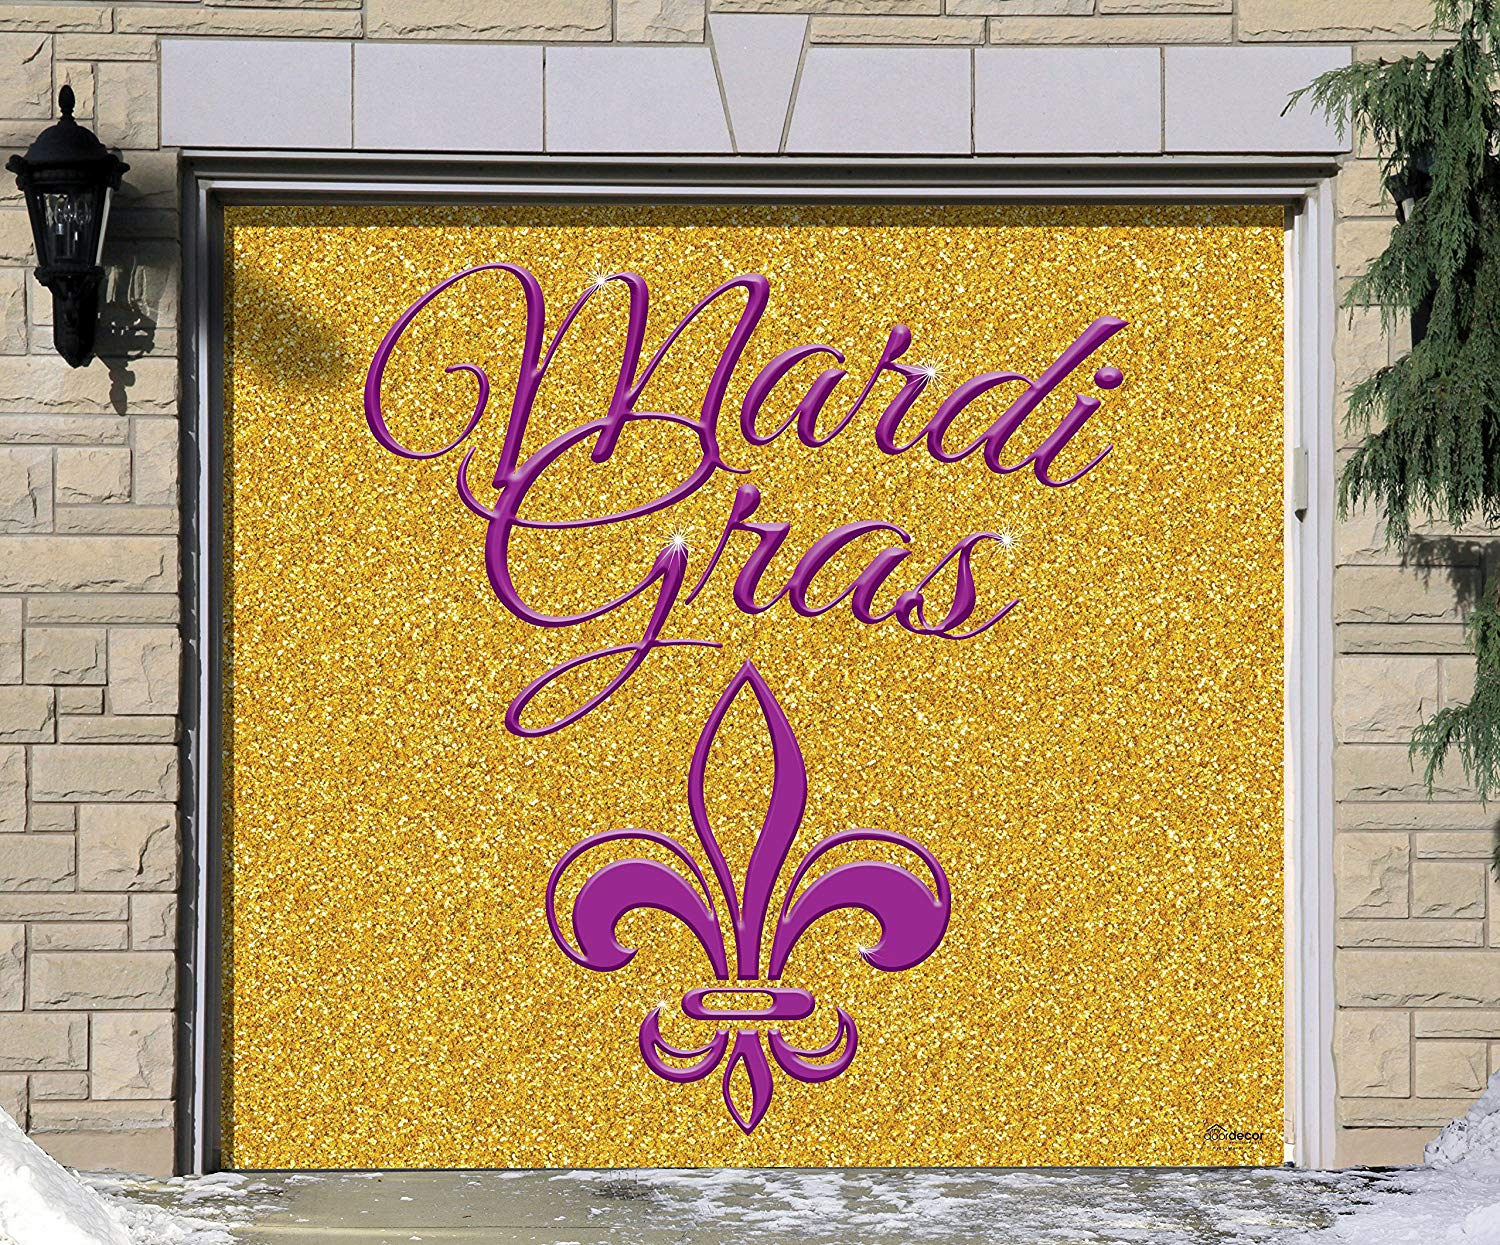 Victory Corps Outdoor Mardi Gras Decorations Garage Door Banner Cover Mural Décoration 7'x8' - Mardi Gras Gold Glitter- The Original Mardi Gras Supplies Holiday Garage Door Banner Decor